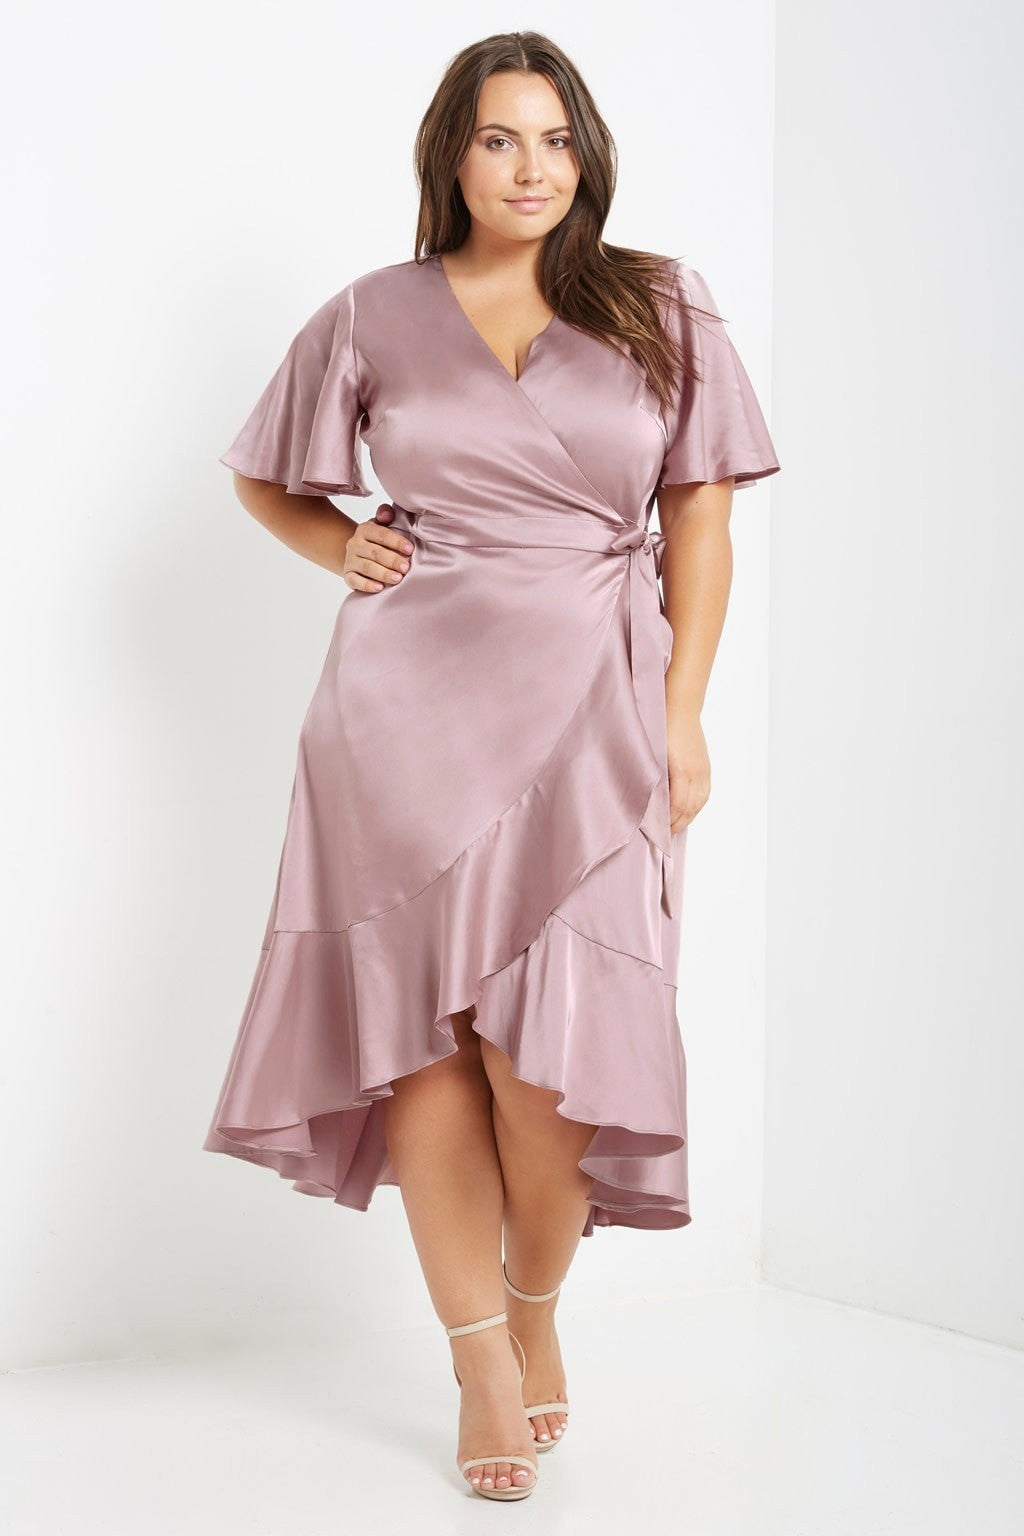 Dusty Pink Satin Wrap Midi Dress Plus Size – Canyla Ash Boutique